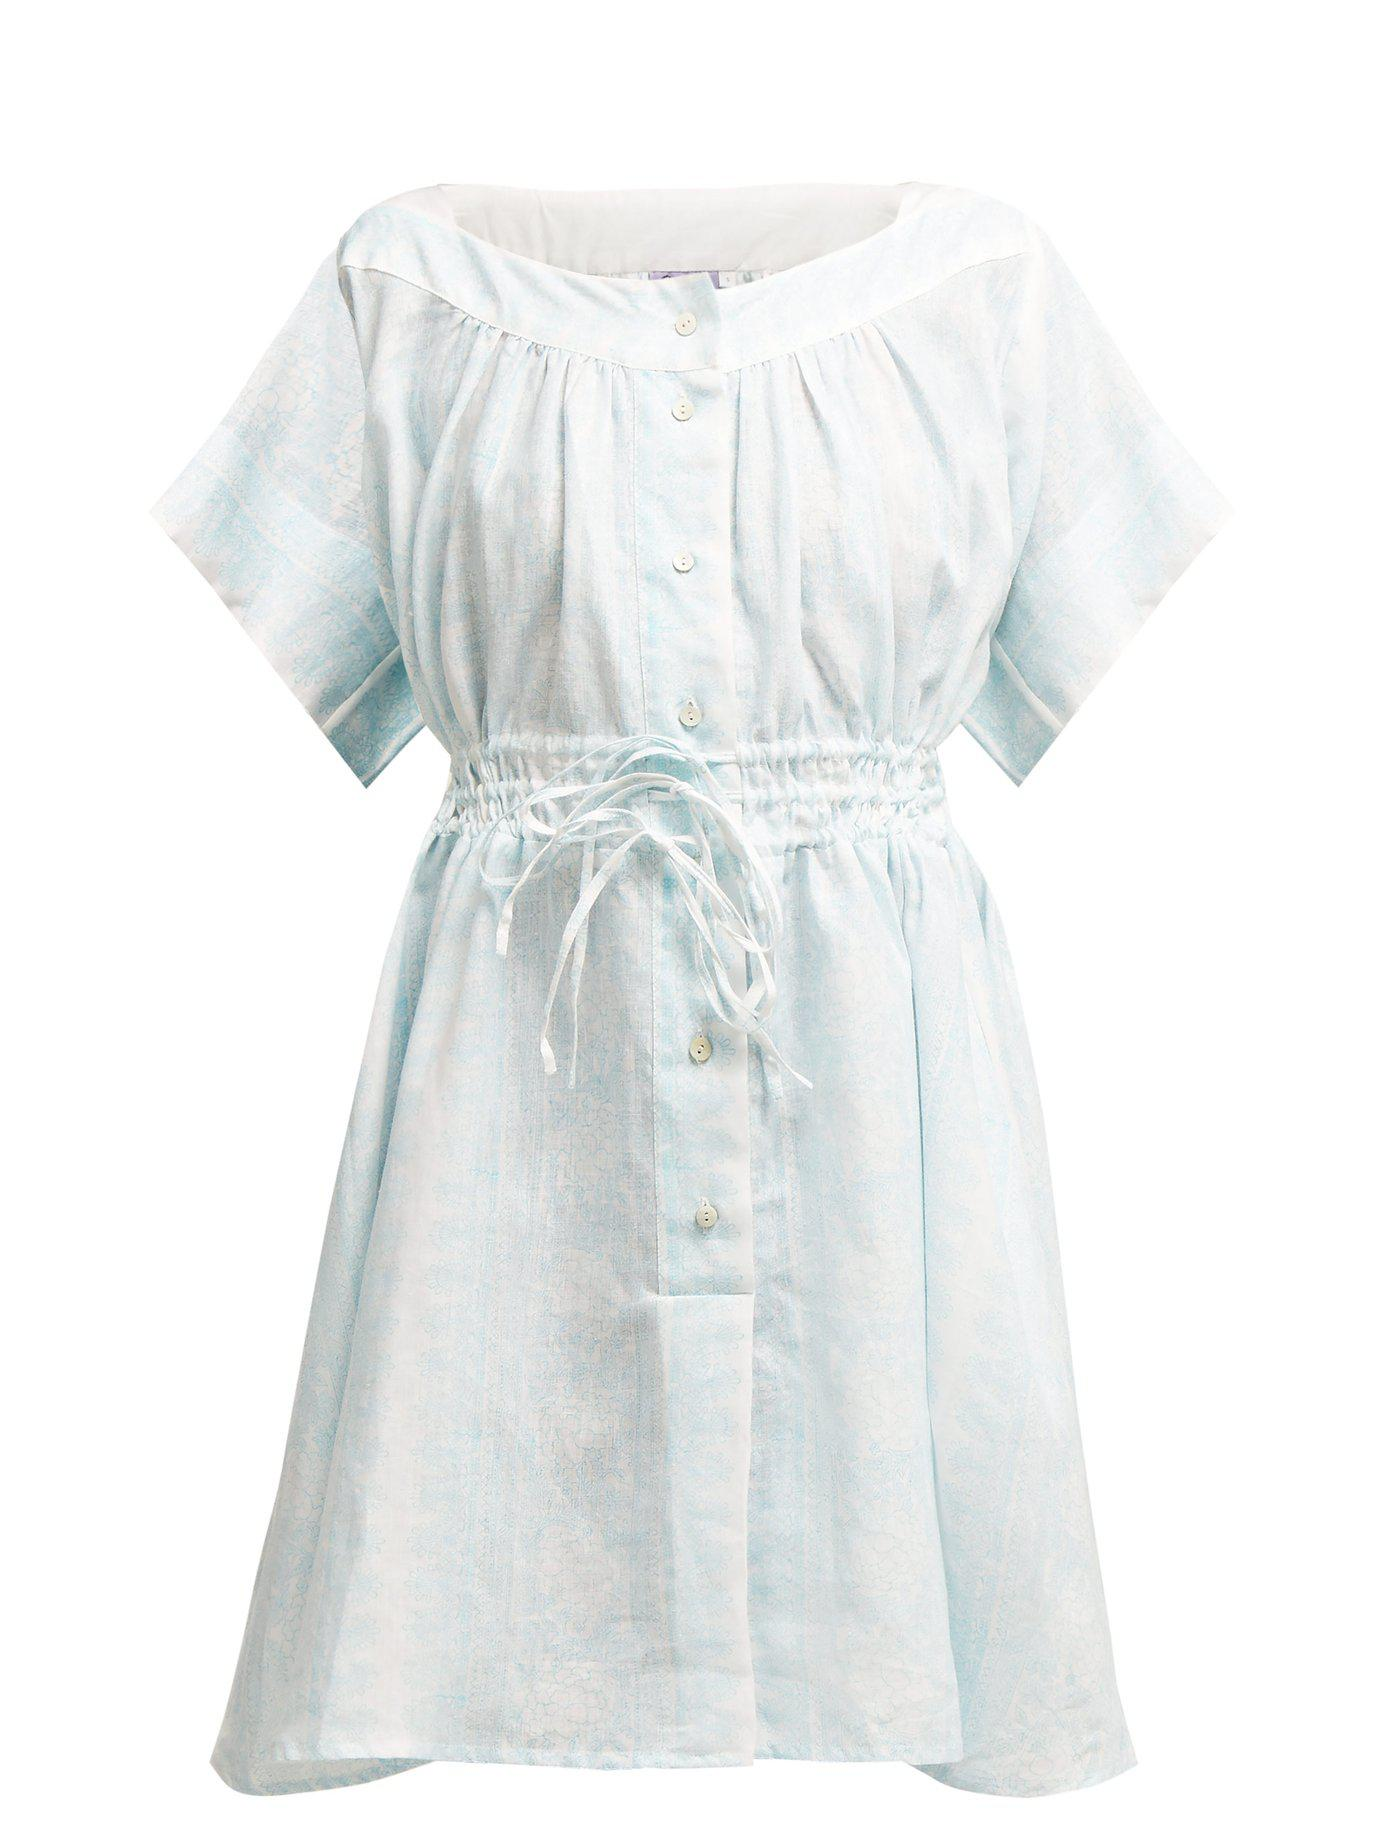 942ae97c62 Lyst - Thierry Colson Tania Floral Print Linen Dress in Blue